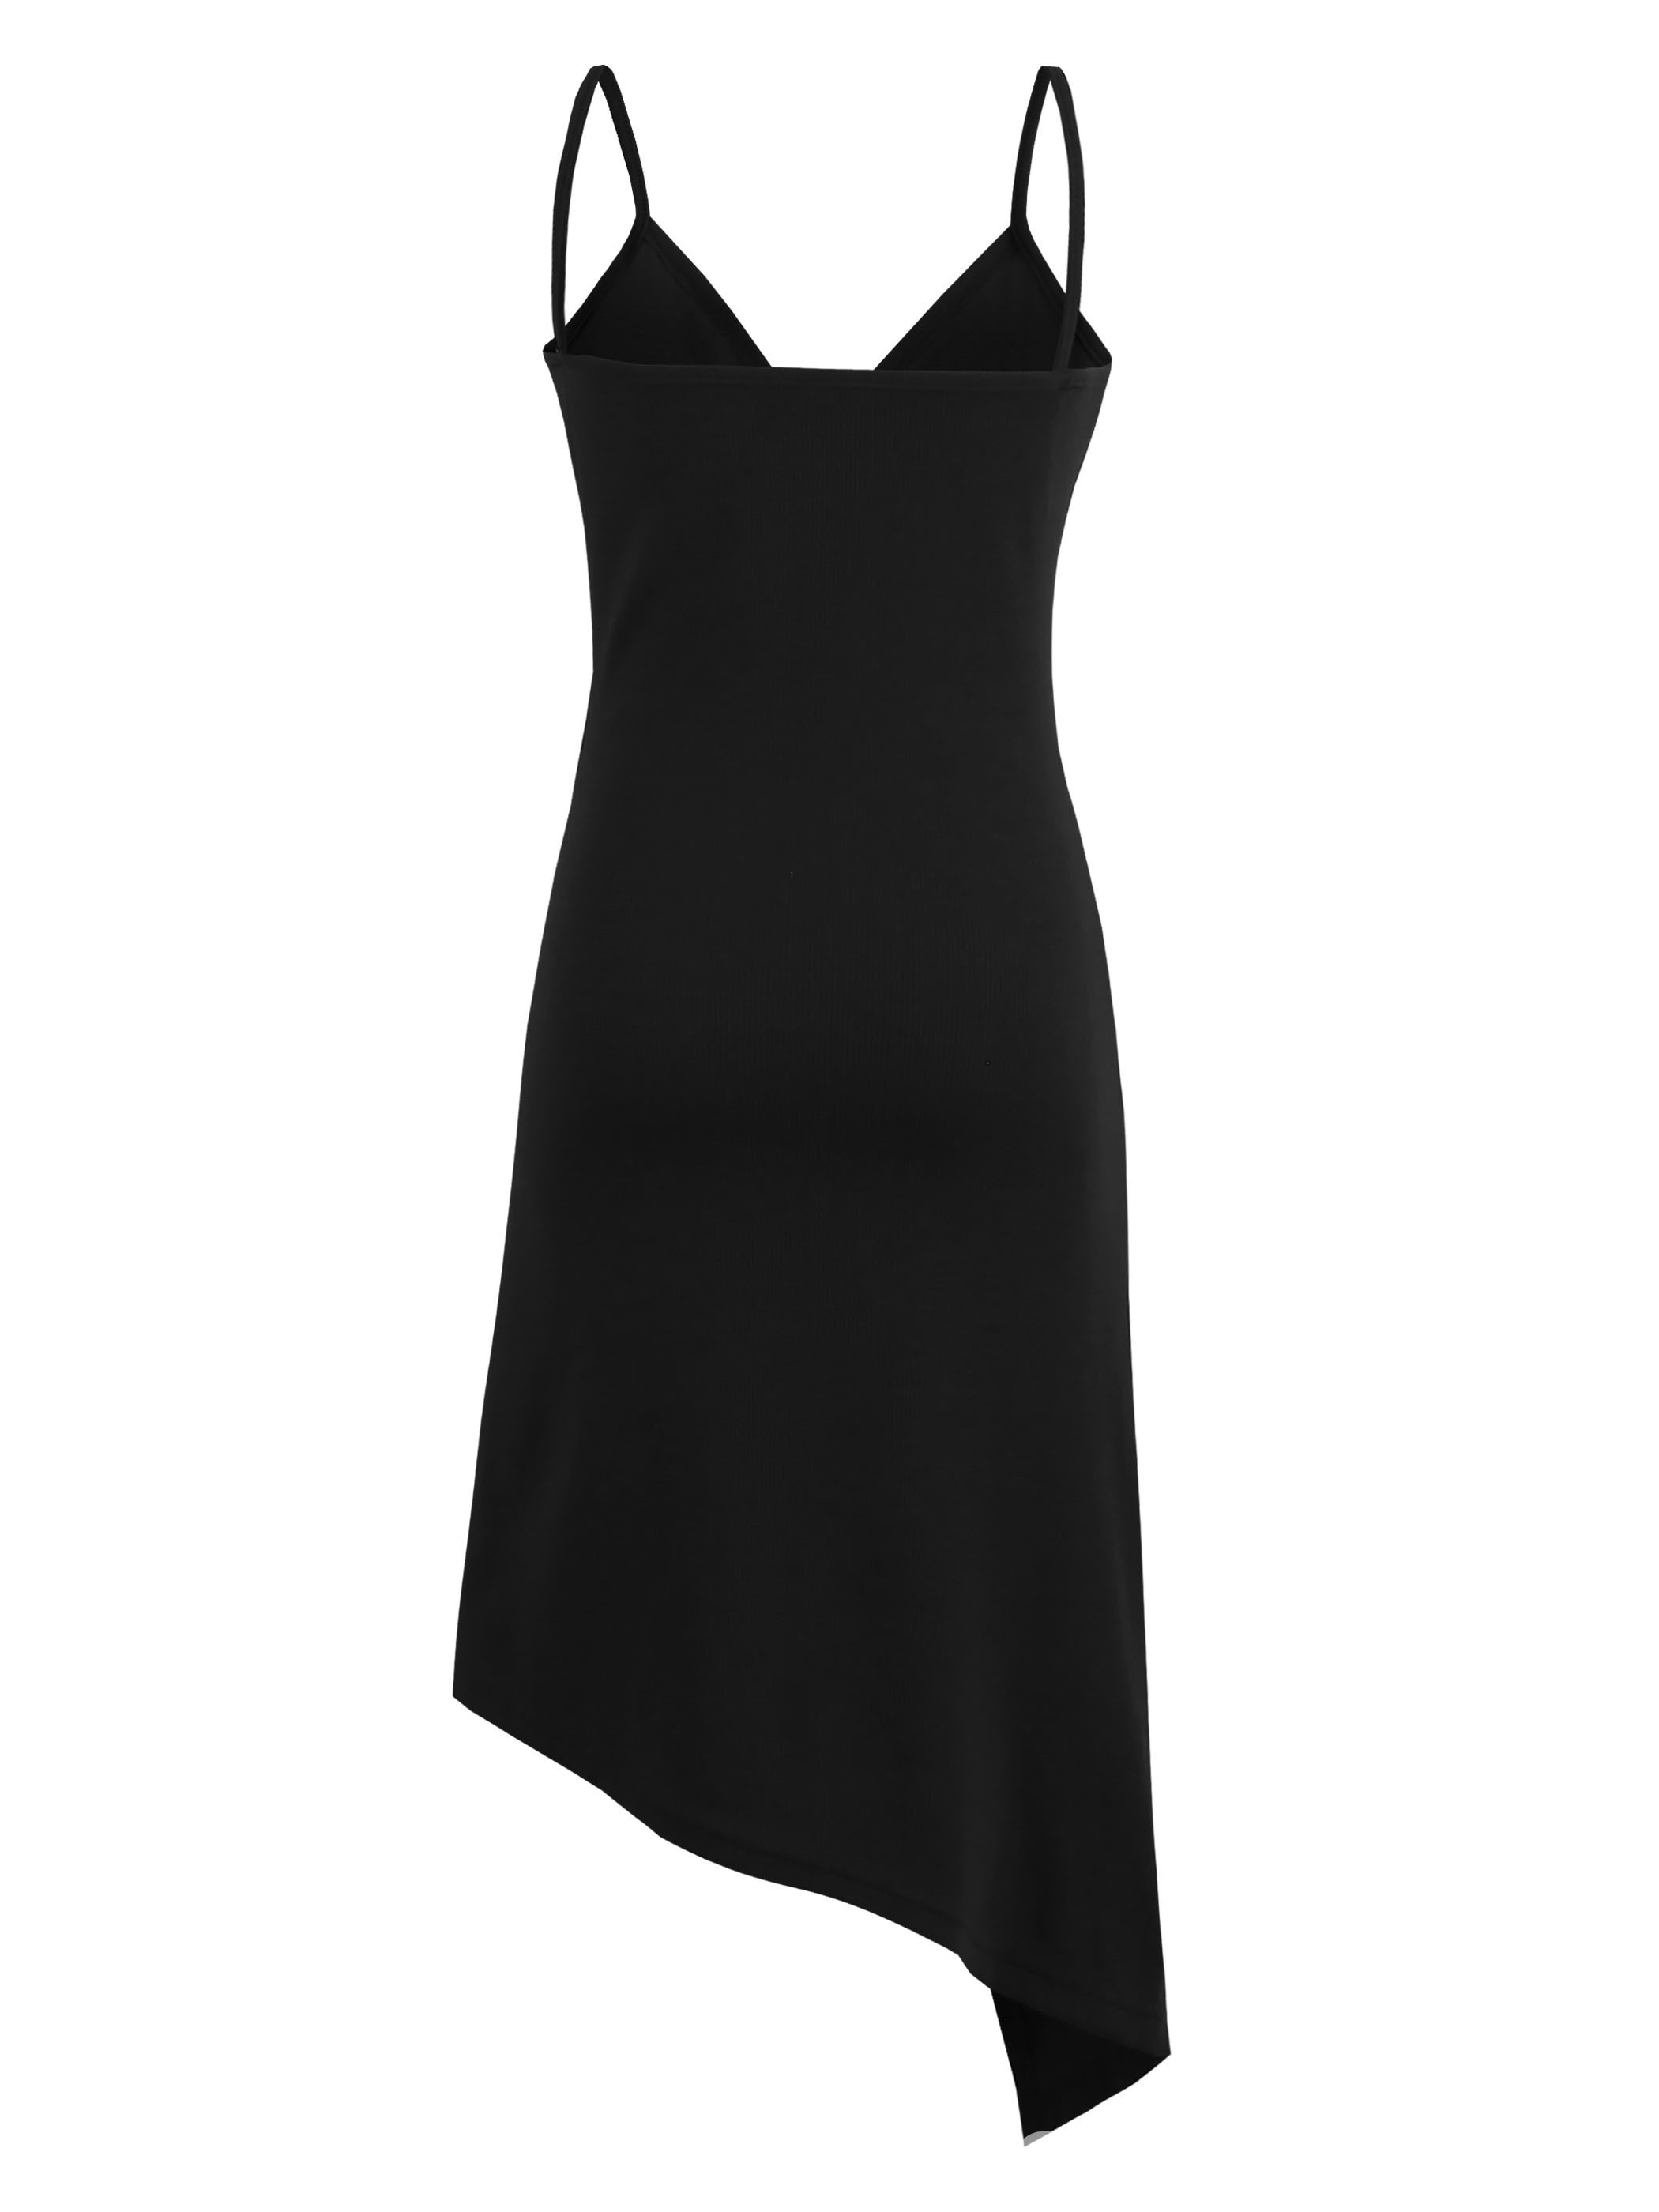 Spaghetti Strap Asymmetric Women's Day Dress